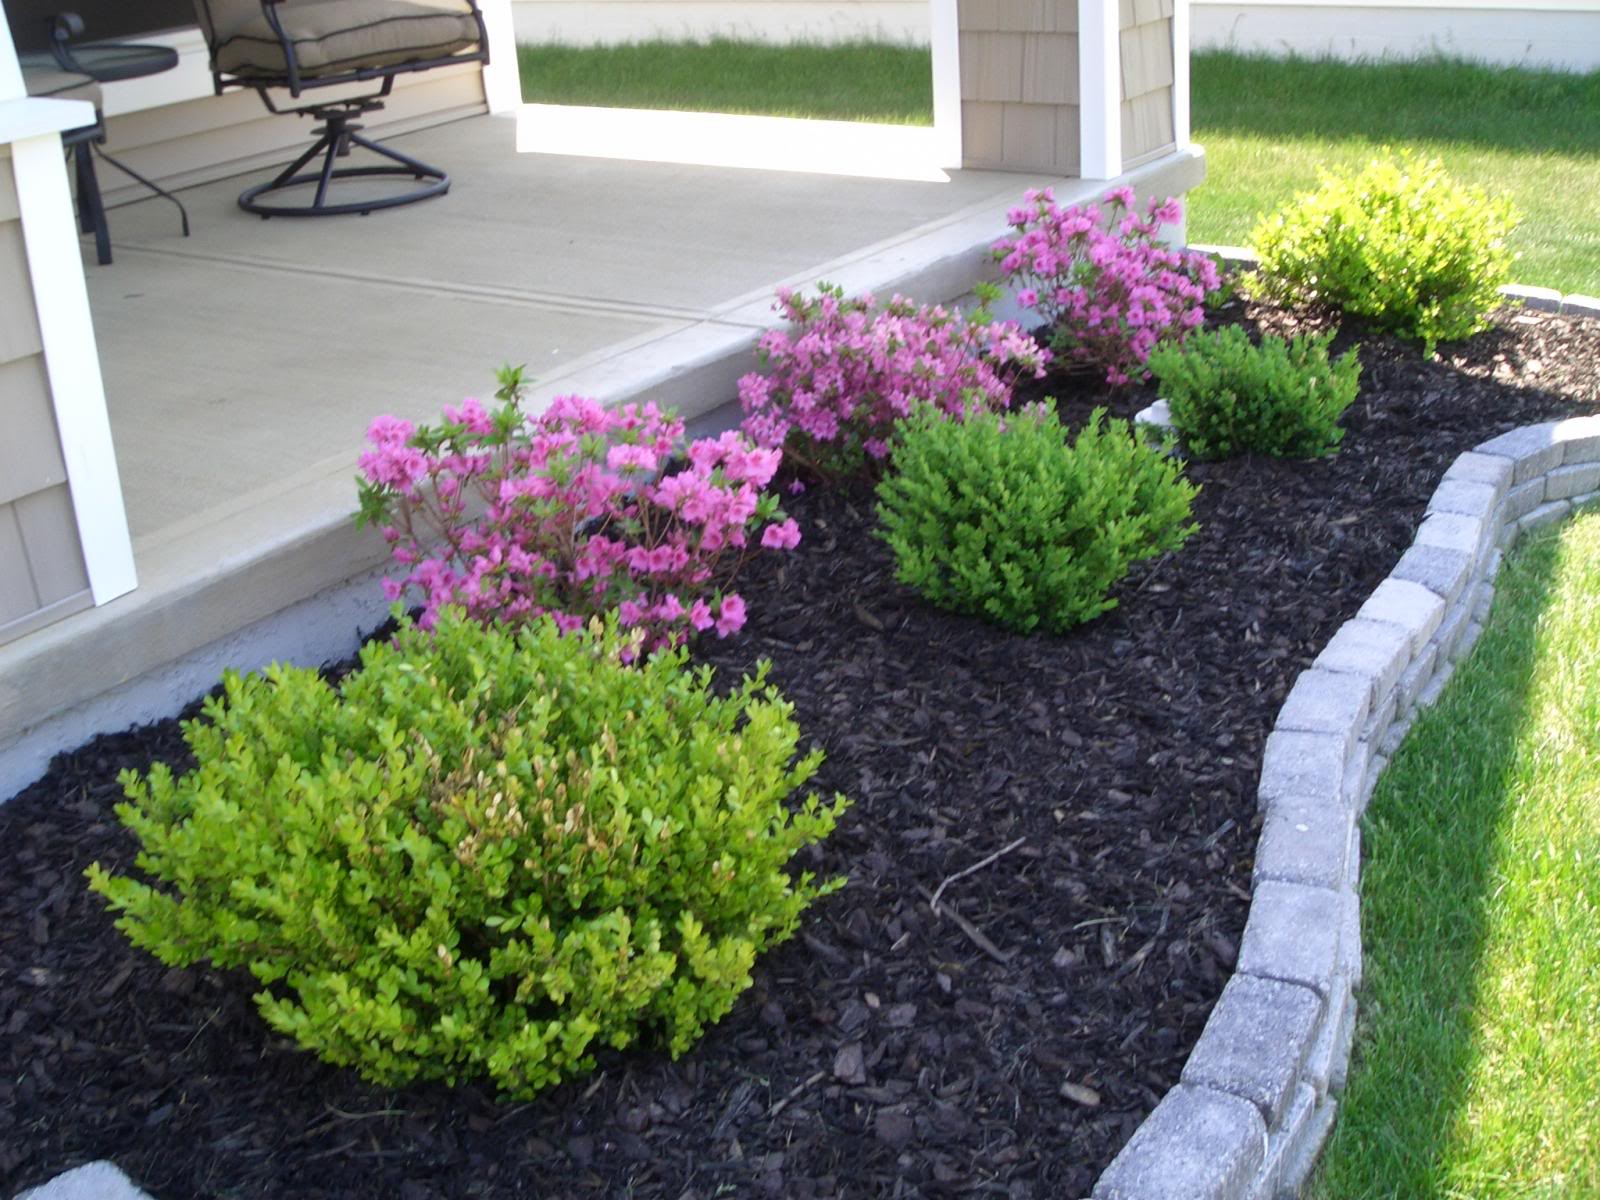 Landscaping landscape plants ideas for Simple landscape design